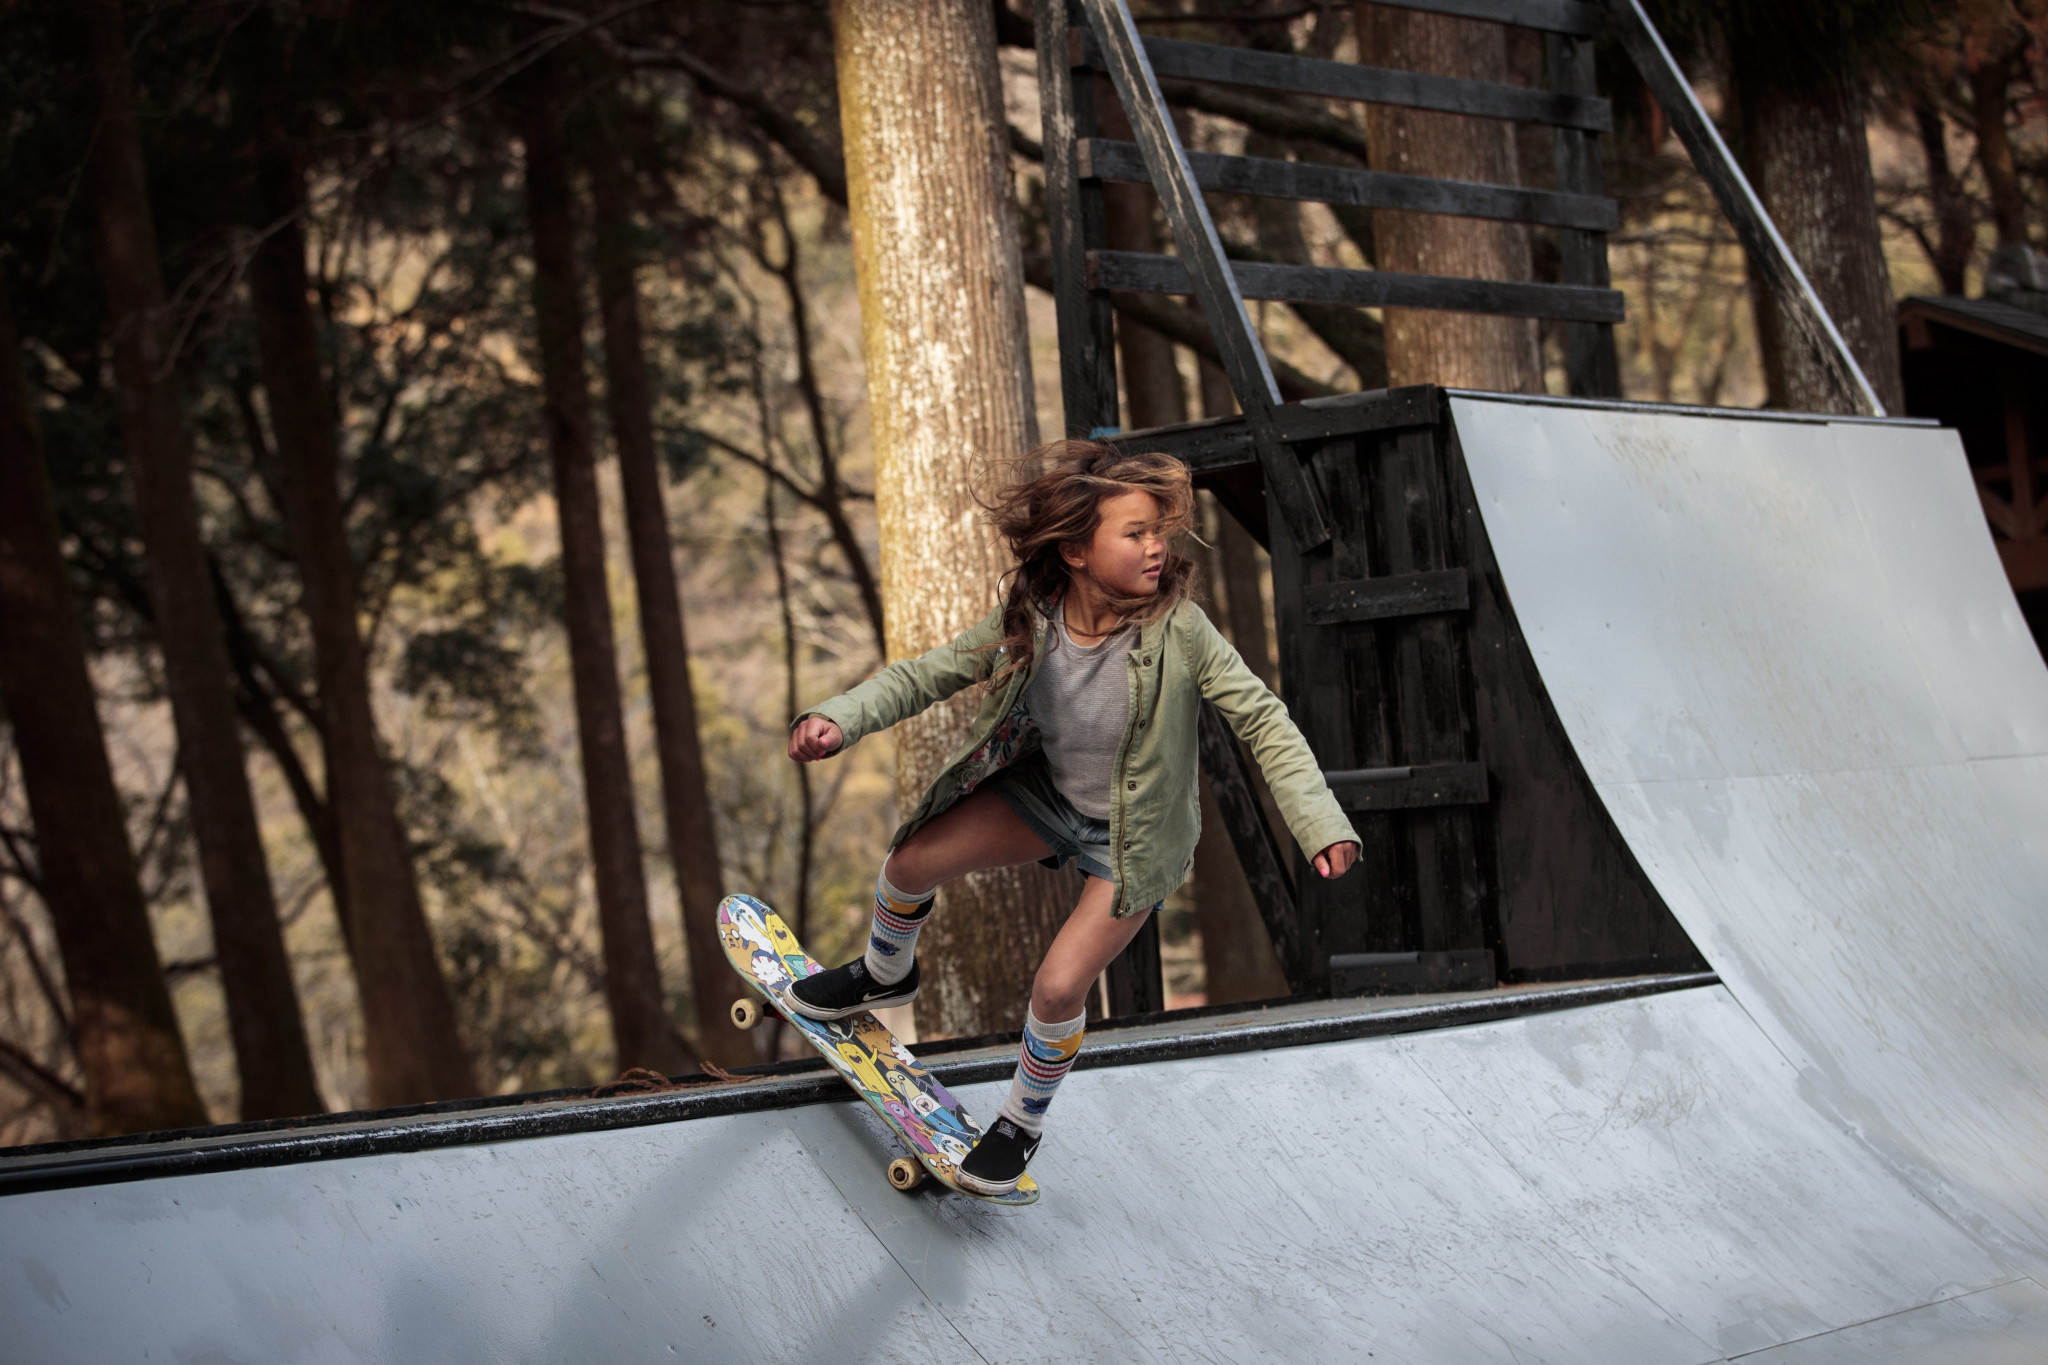 Ten-year-old star Sky Brown is among a team of five skateboarders who will benefit from UK Sport's recent Aspiration Fund award ©Getty Images